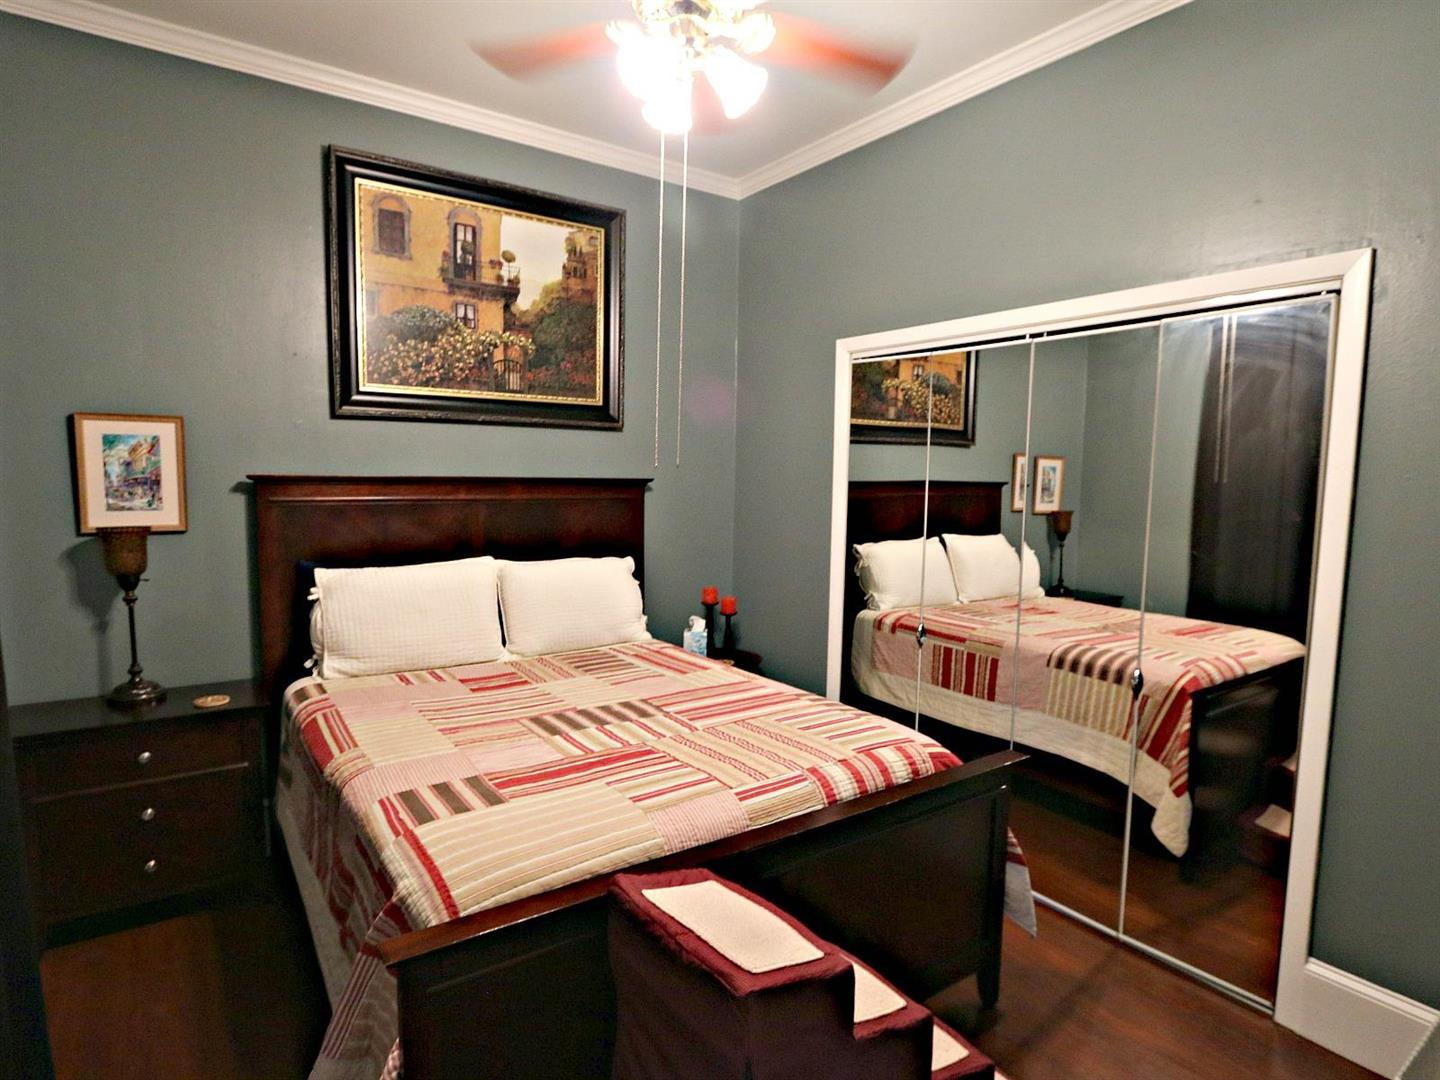 1015BurgundyCondoBedroom2.jpg